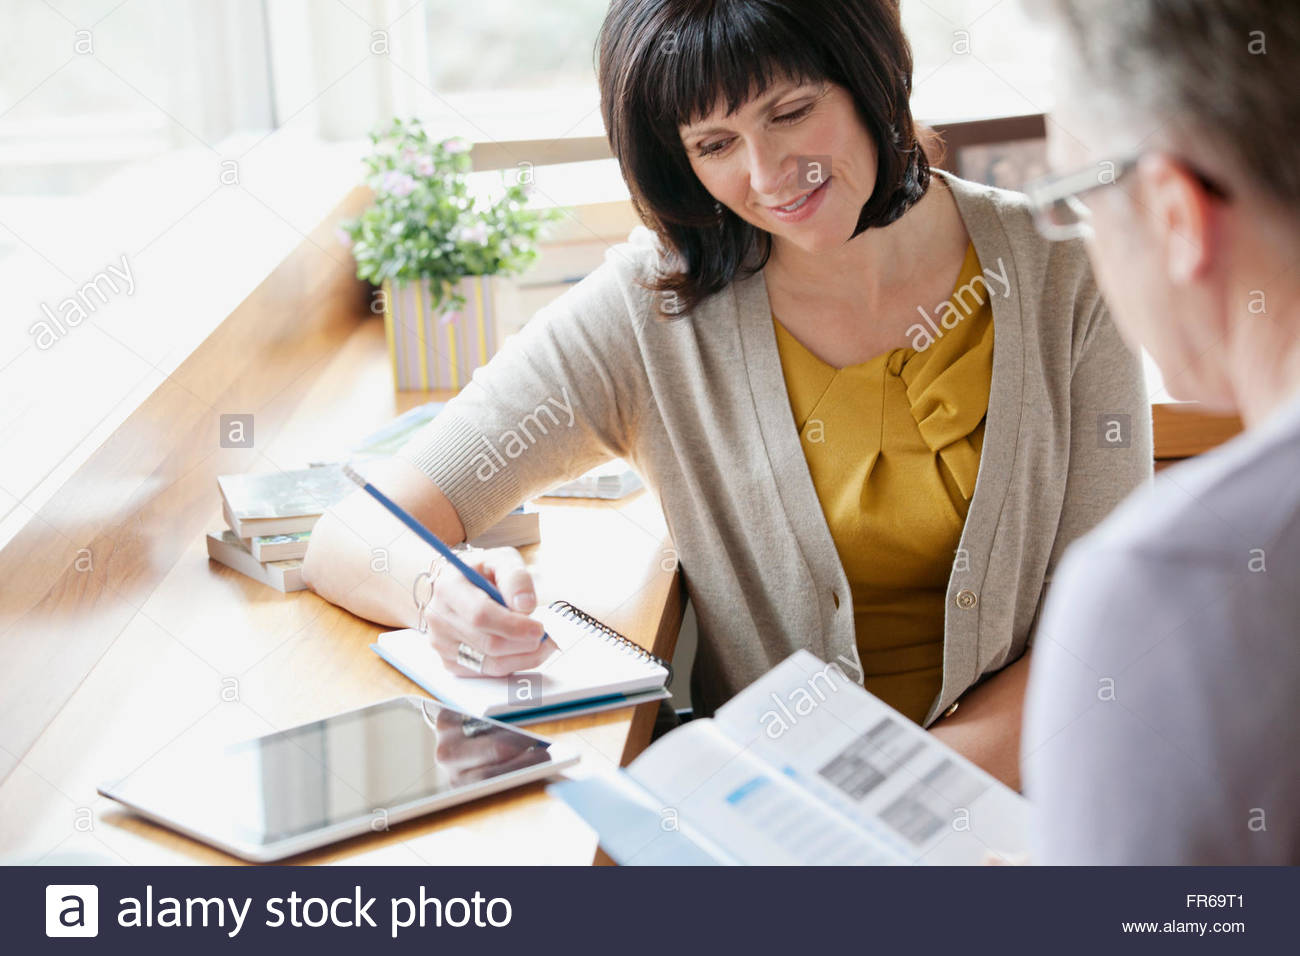 professional taking patient information - Stock Image